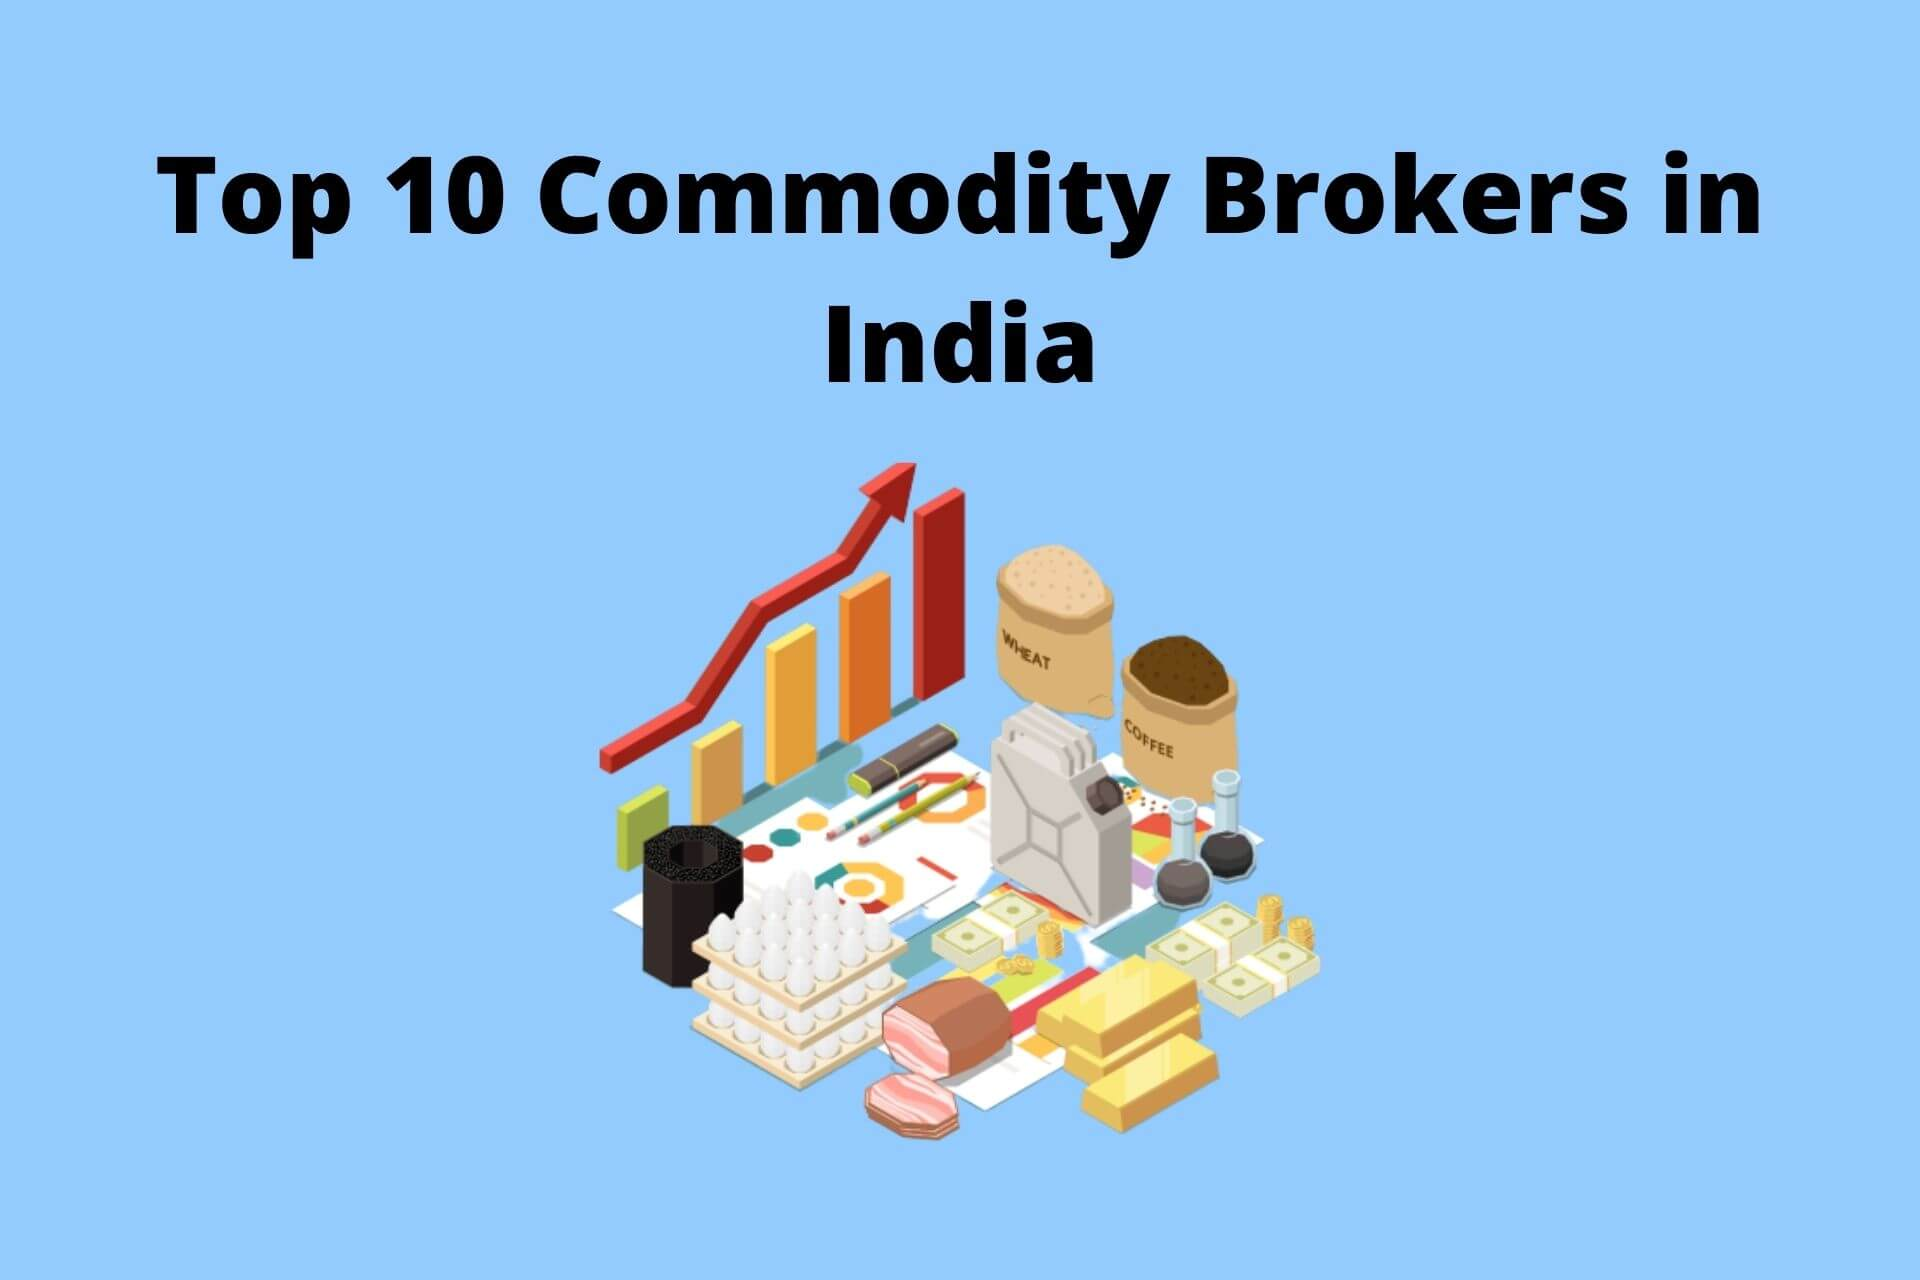 Best Commodity Trading Platform – List of Top 10 Commodity Brokers in India